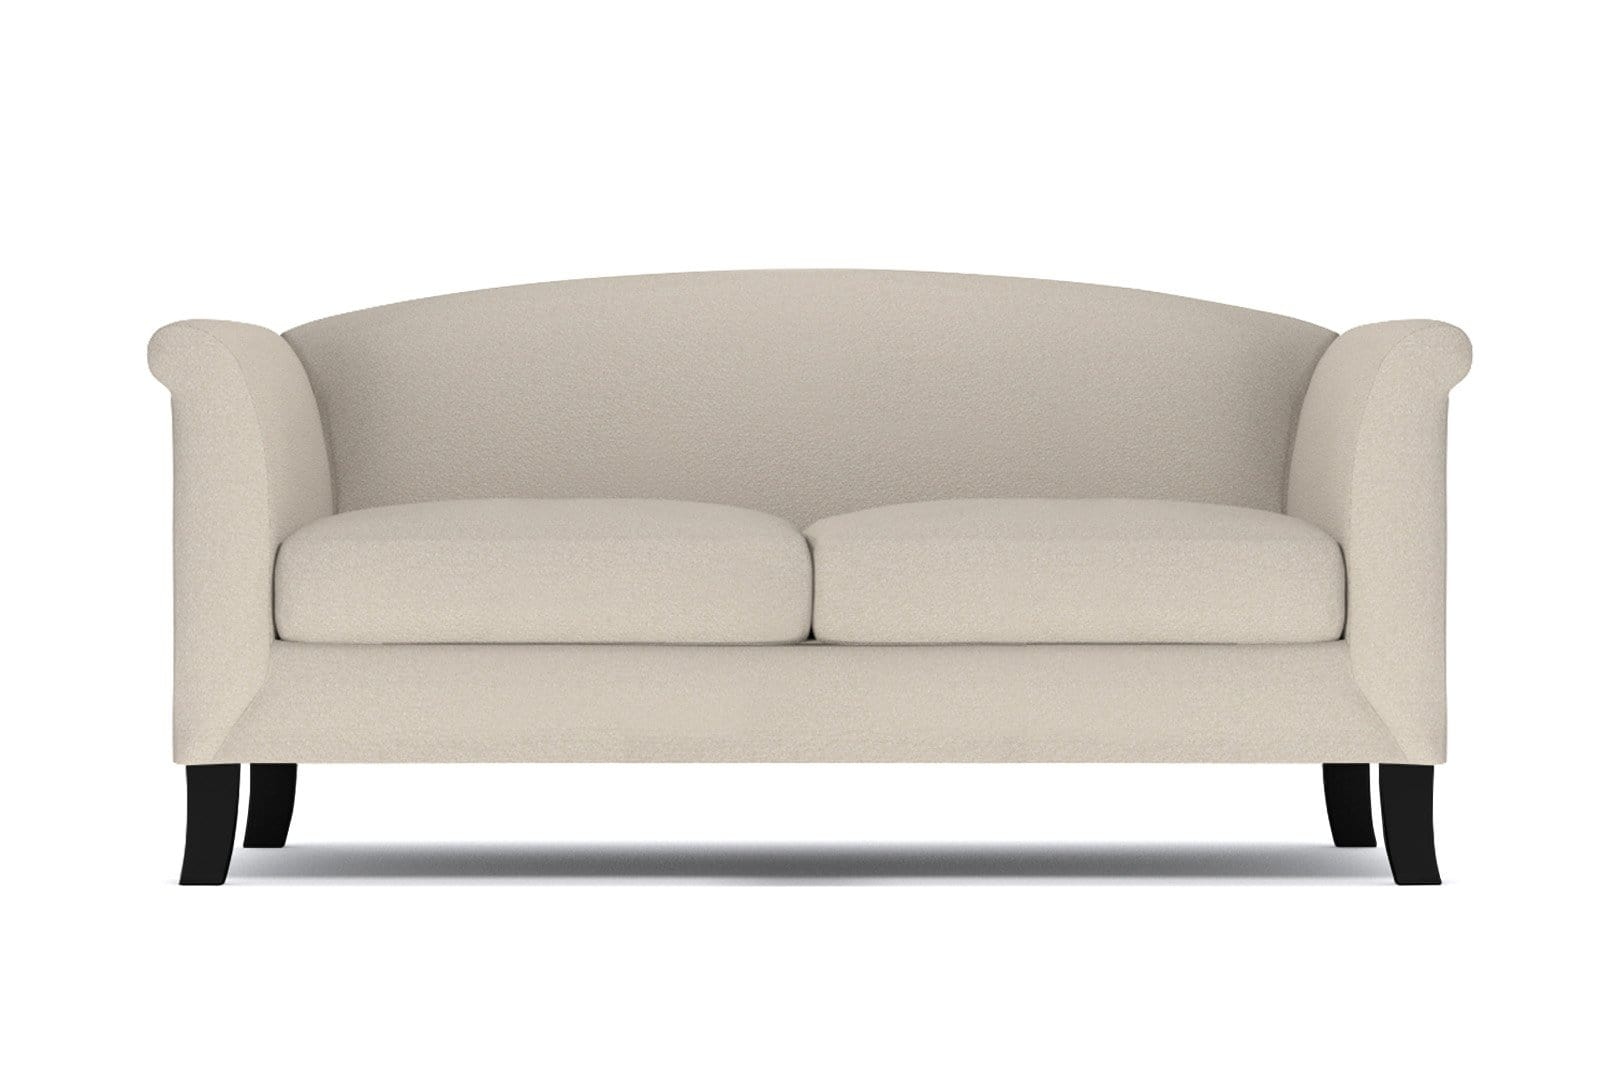 Albright_Apartment_Size_Sofa__Beige___Small_Space_Modern_Couch_Made_in_the_USA__Sold_by_Apt2B